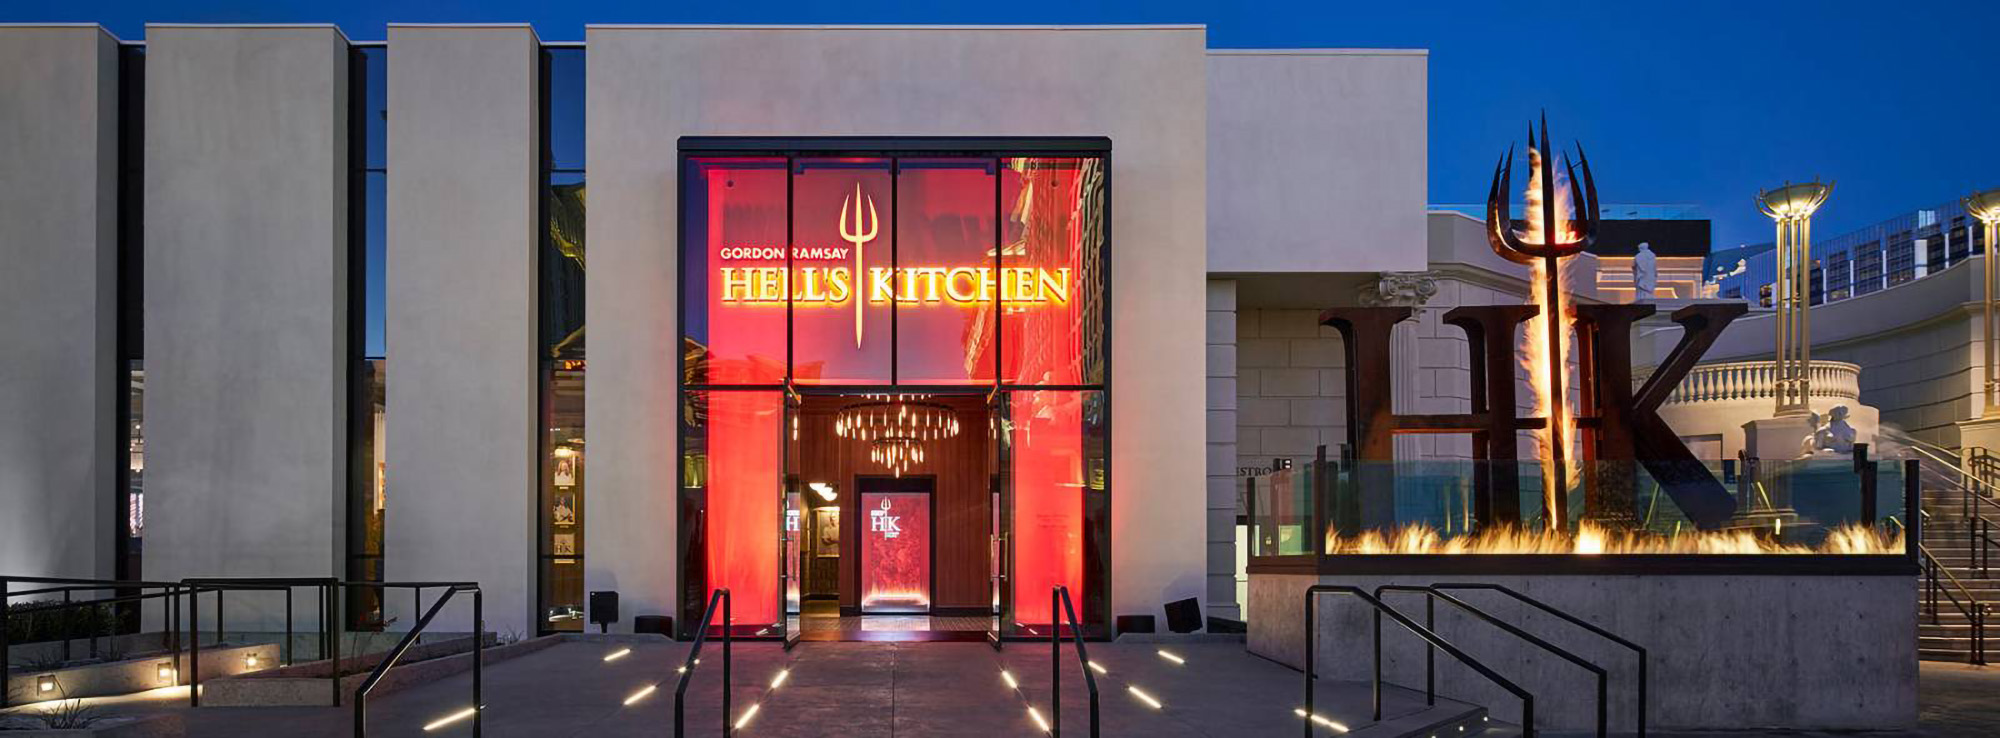 Entrance to Hell's Kitchen in Las Vegas